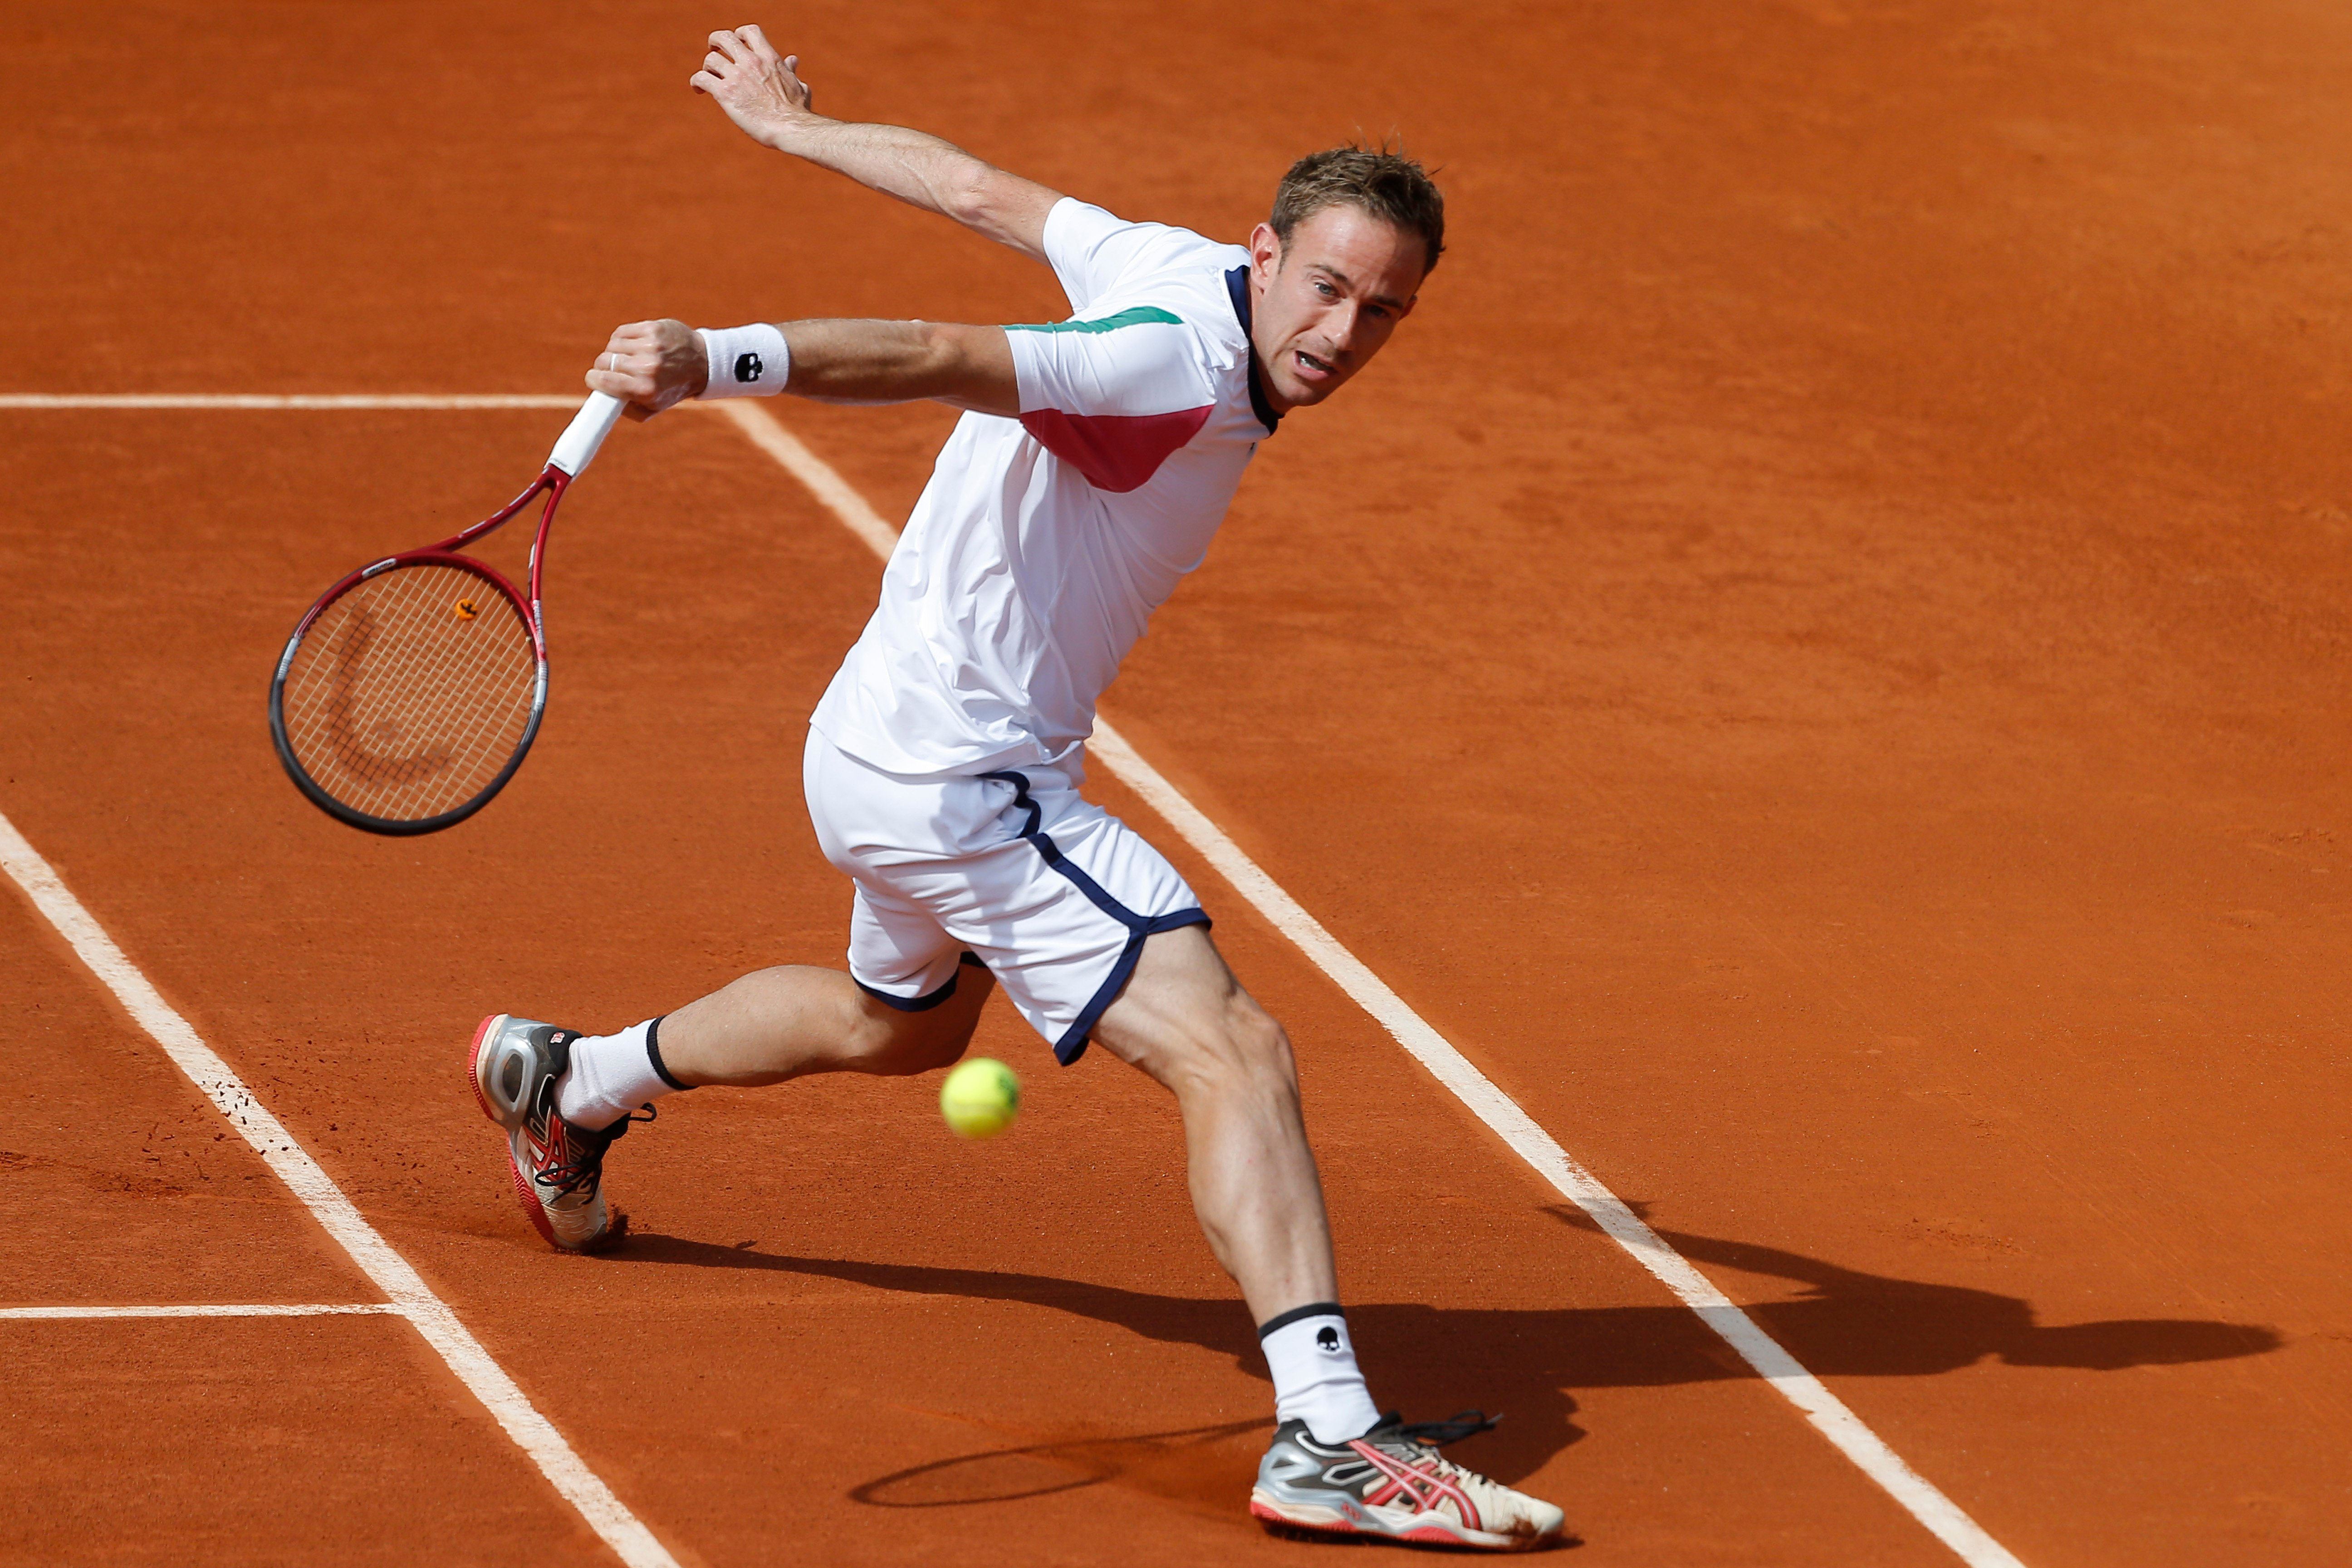 france_tennis_french_open-da2a4d3de44749_r4357.jpeg